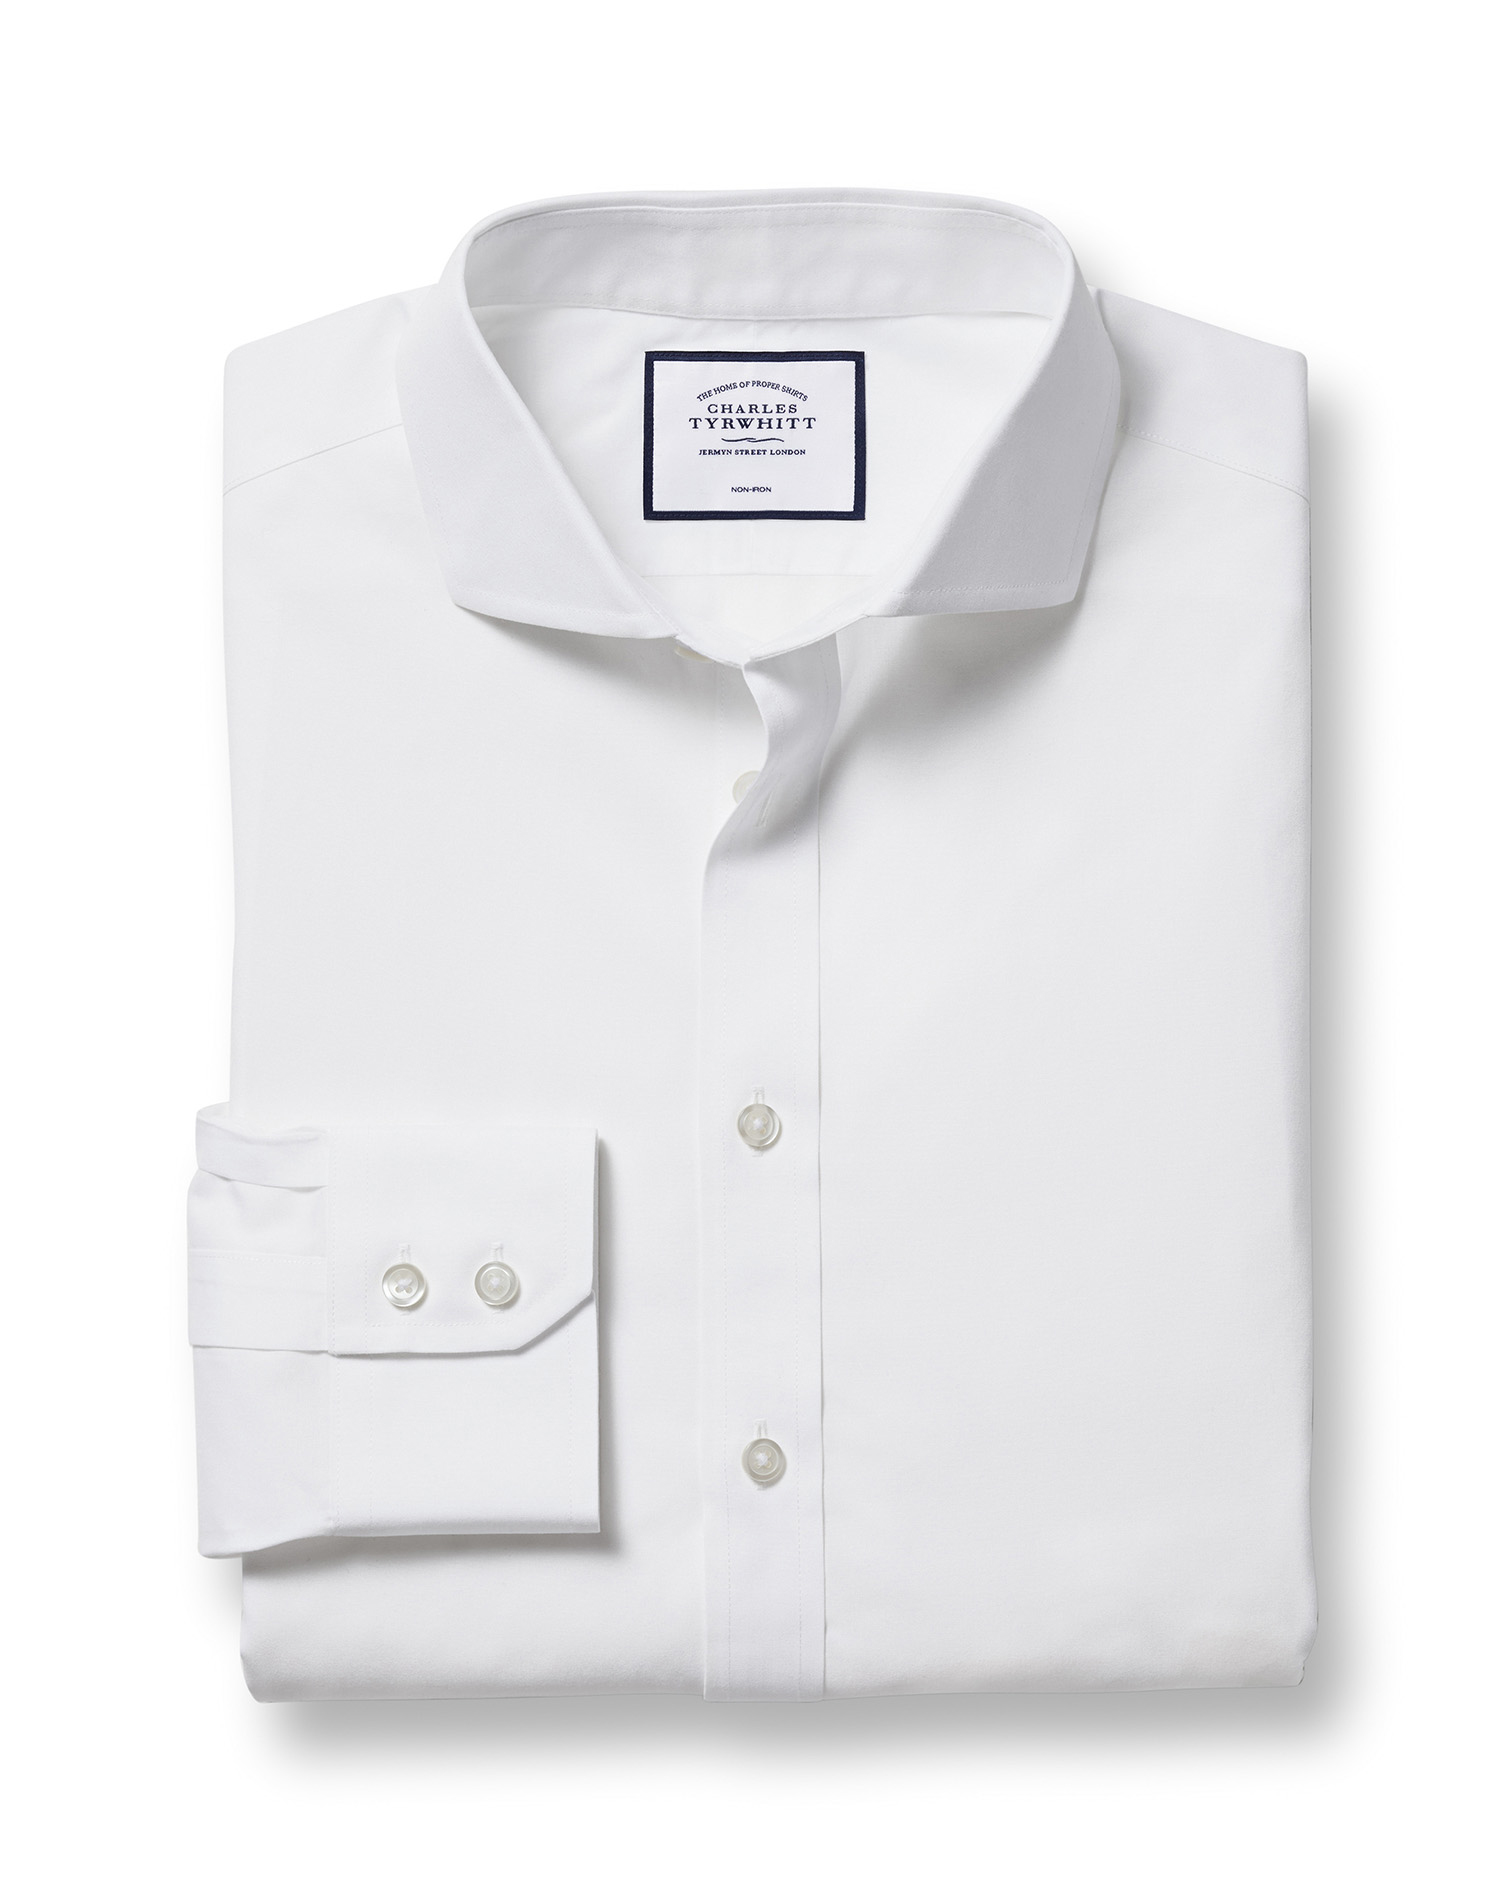 Classic Fit Cutaway Non-Iron Poplin White Cotton Formal Shirt Double Cuff Size 17.5/35 by Charles Ty